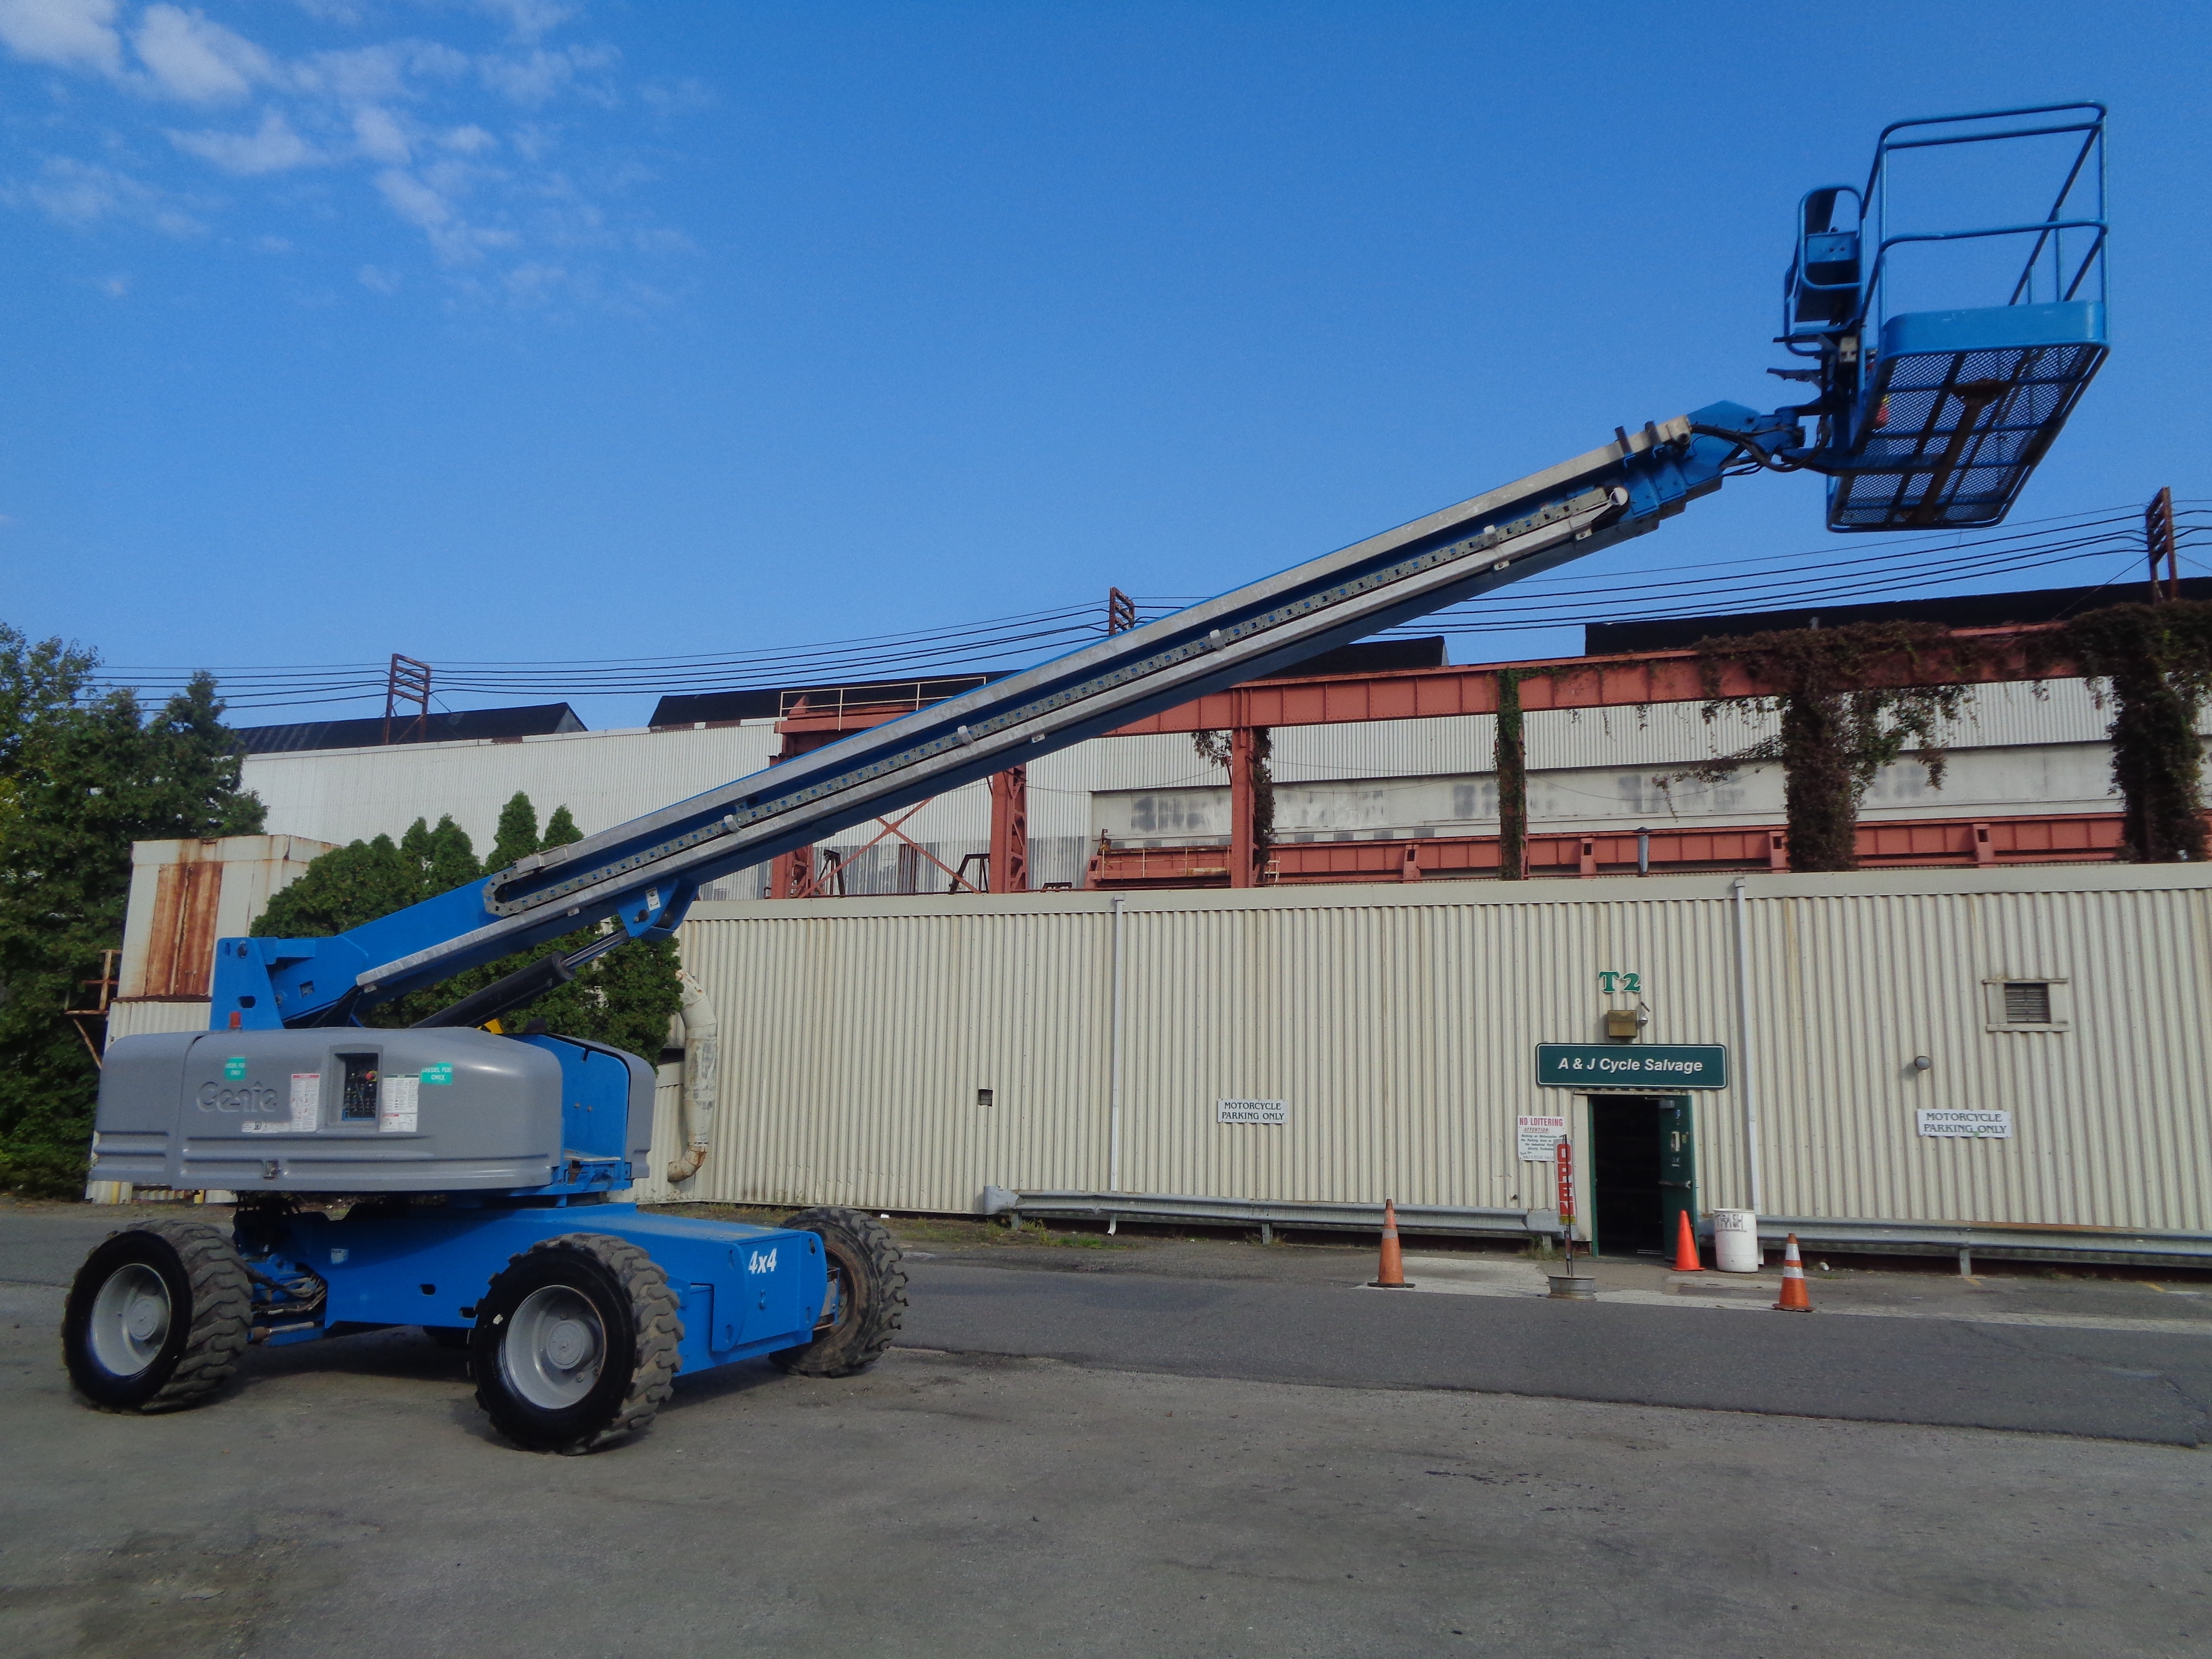 Genie S80 80ft Boom Lift - Image 16 of 22